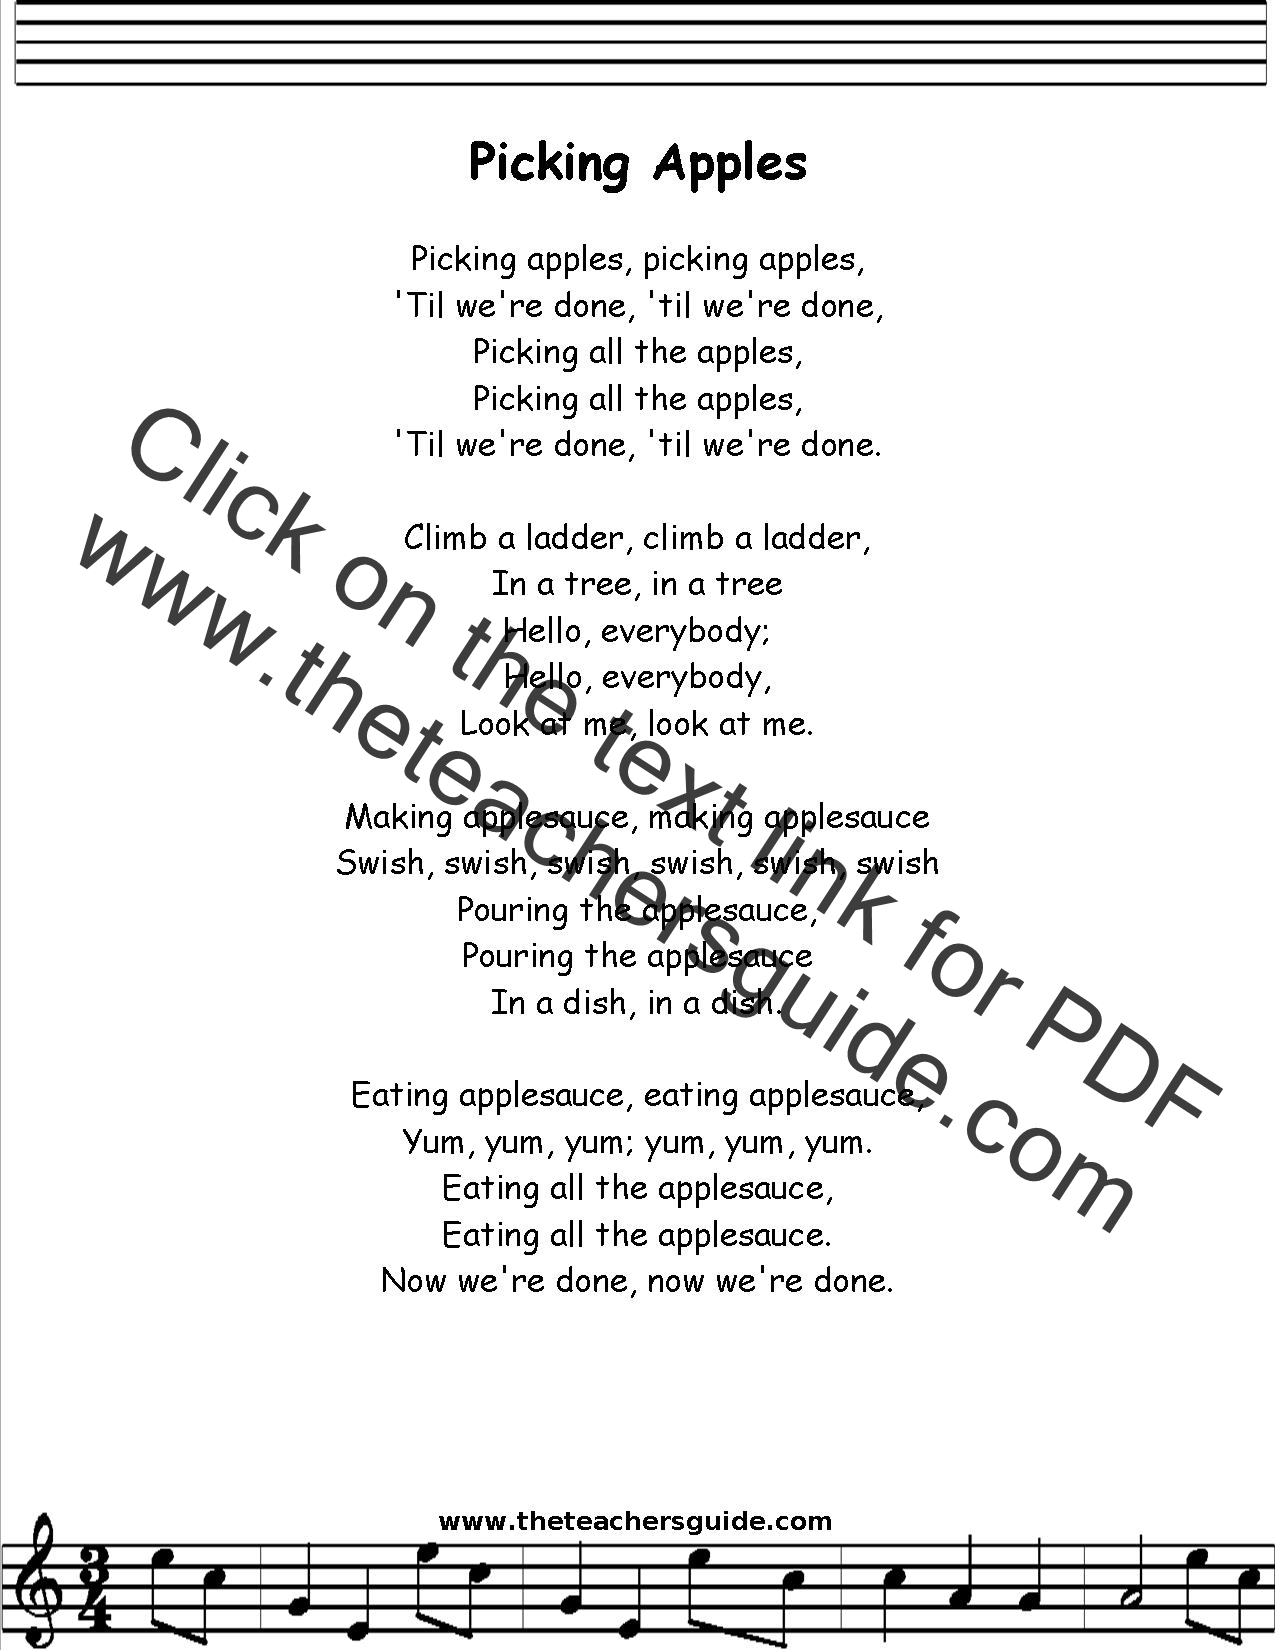 Picking Apples Lyrics Printout Midi And Video